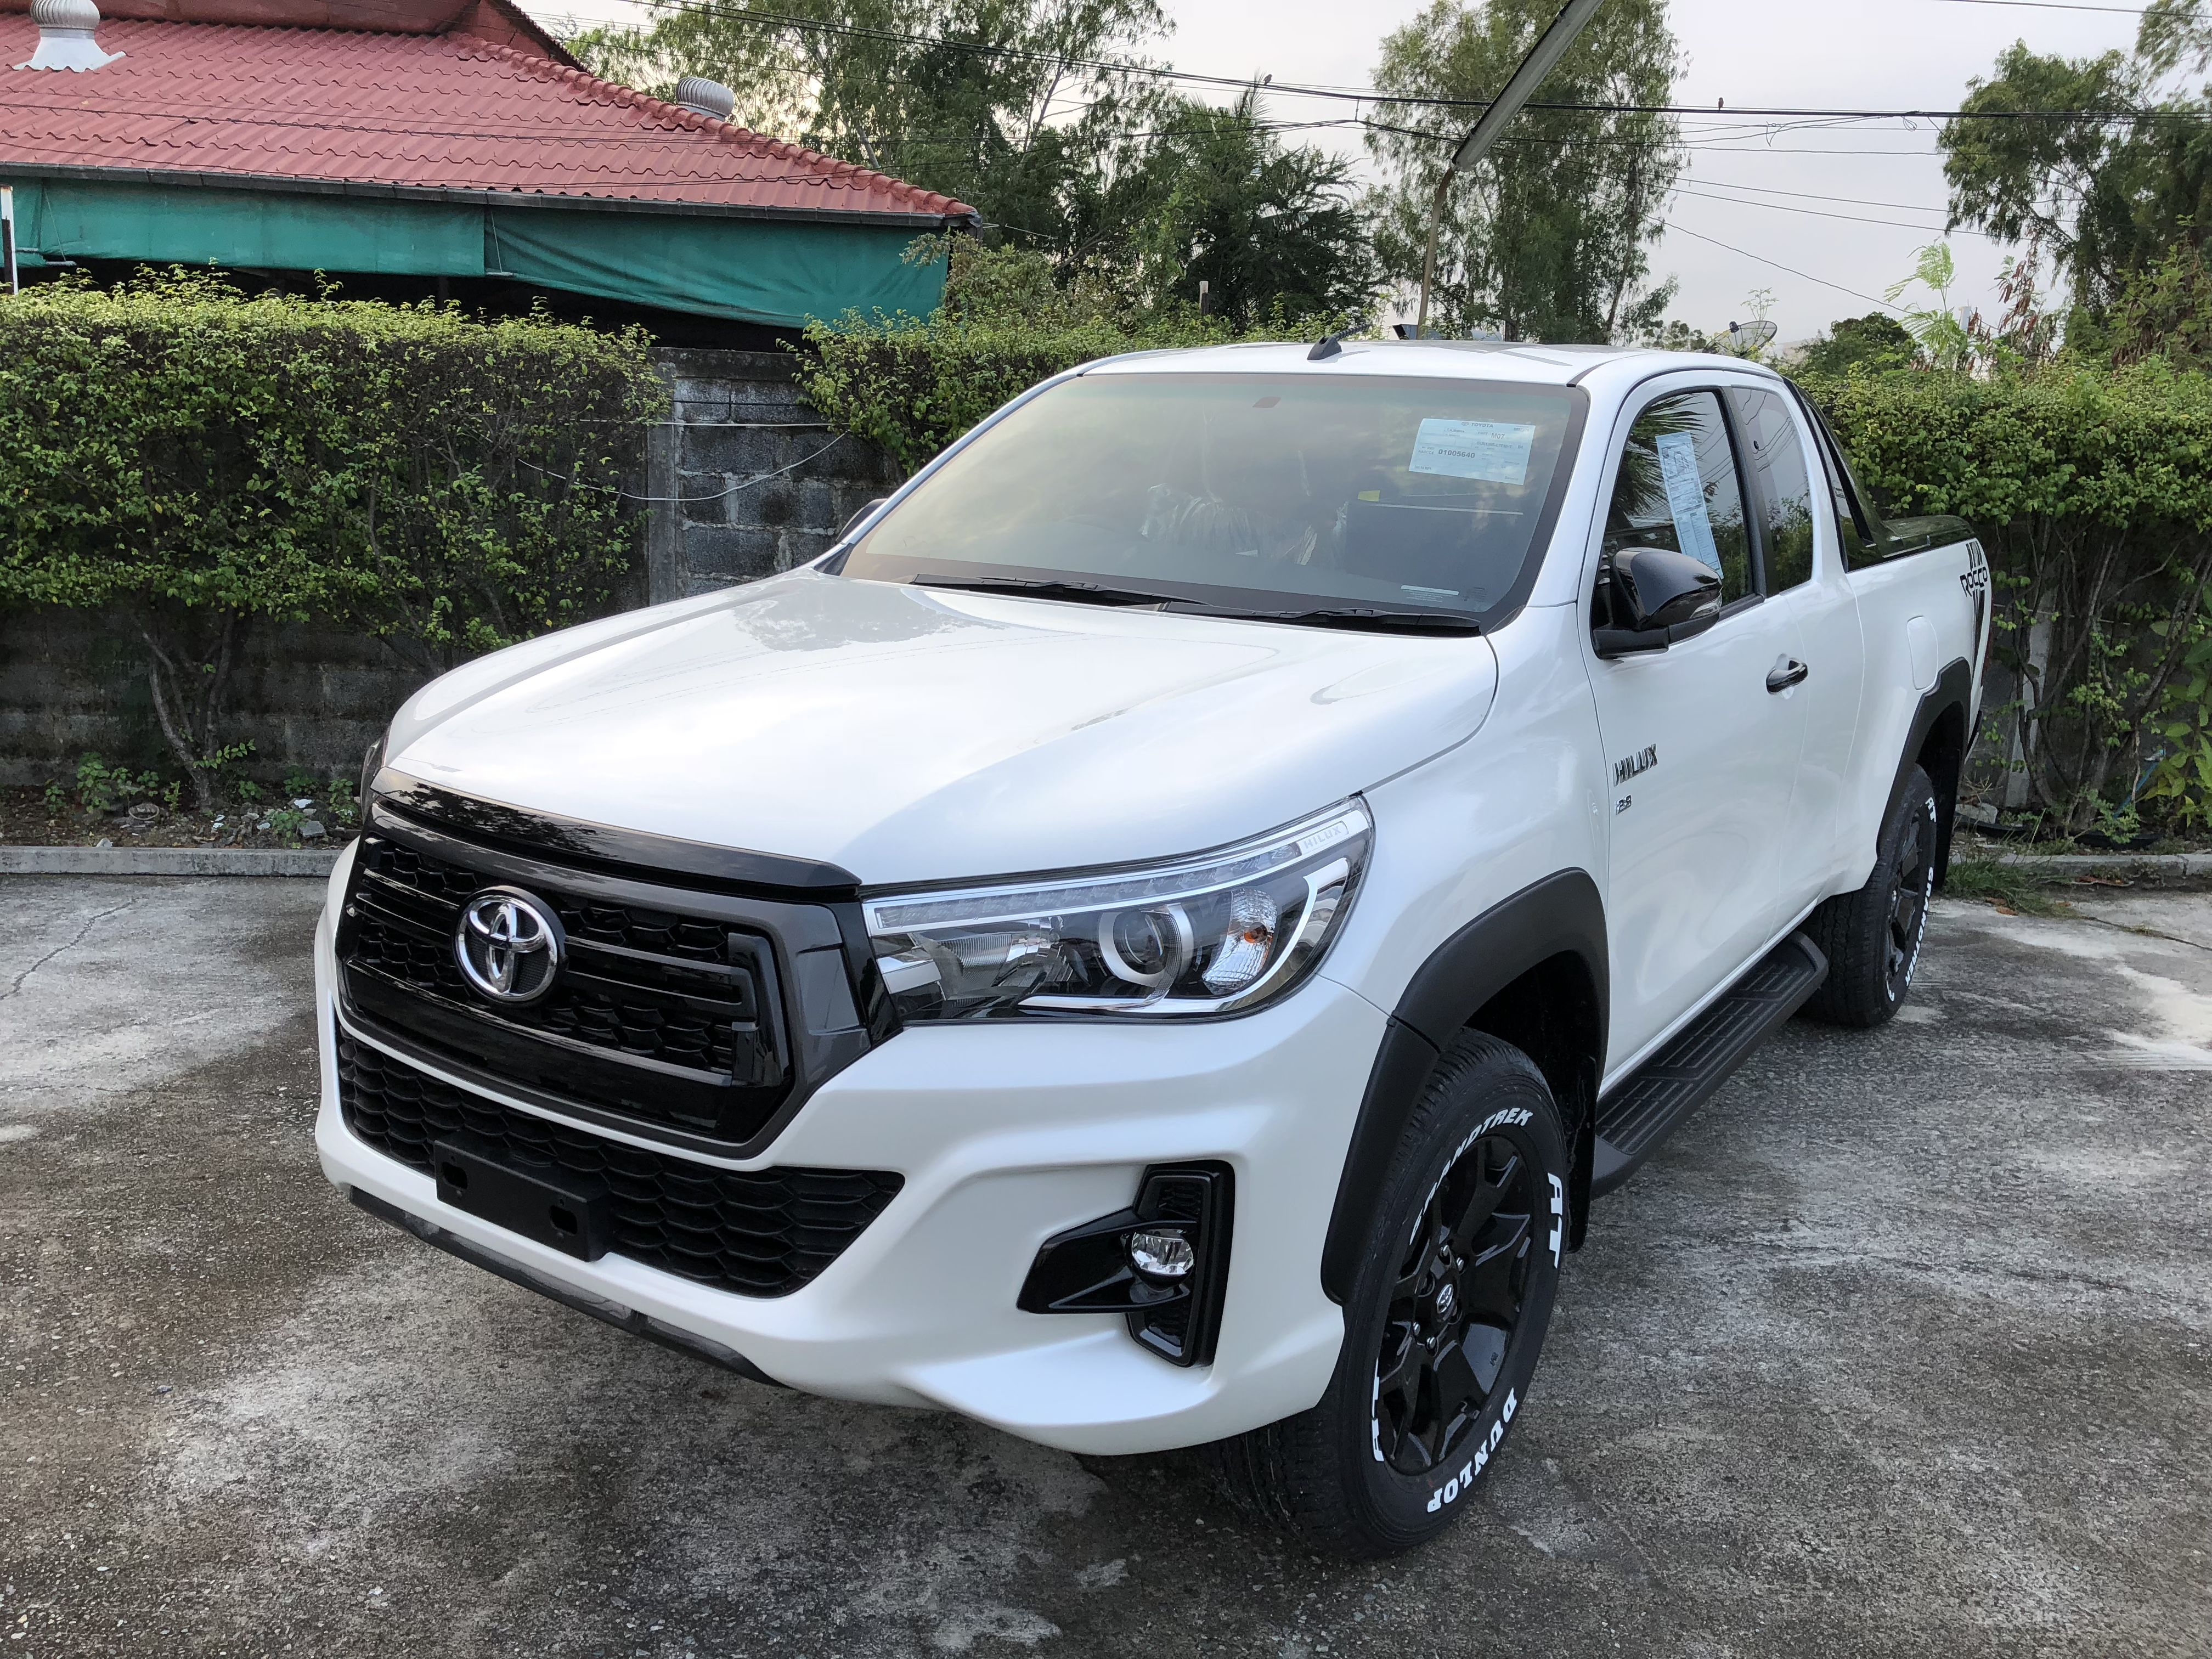 2018 Toyota Hilux Rocco 2.8 Extra Cab #Toyotahilux # ...